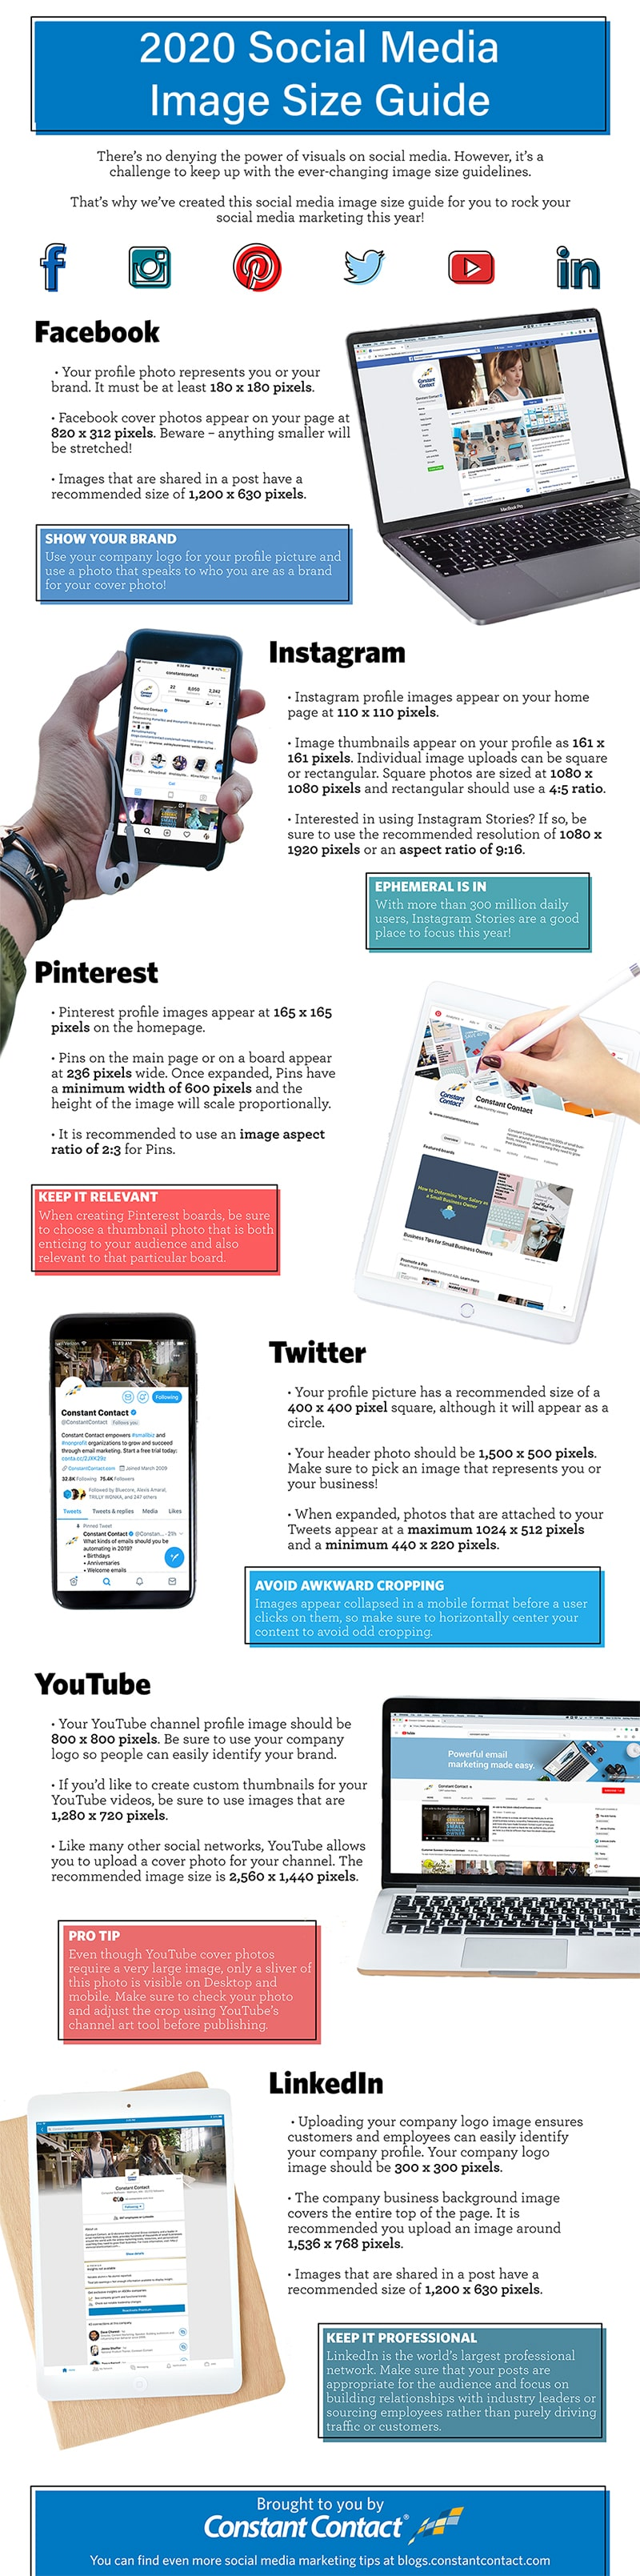 Social Media Image Size Cheat Sheet for 2020